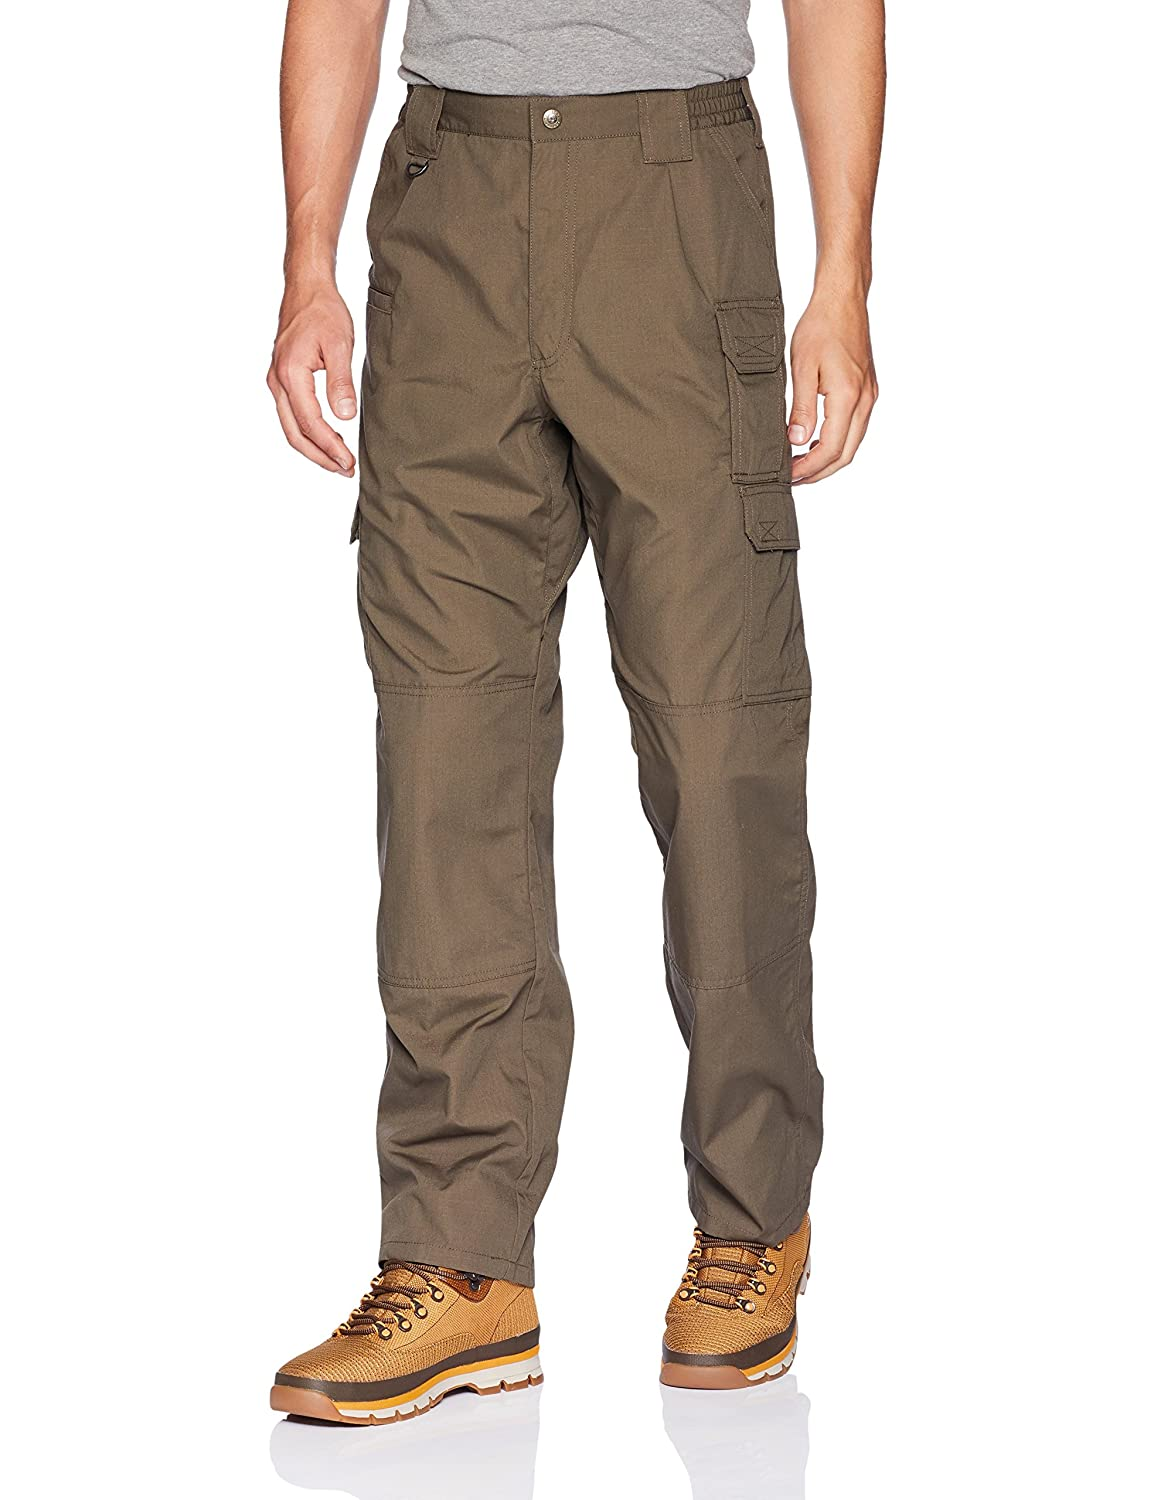 Tundra FR   28 32 (Taille Fabricant   28 32) 5.11 Tactical Series Taclite Pantalon Homme